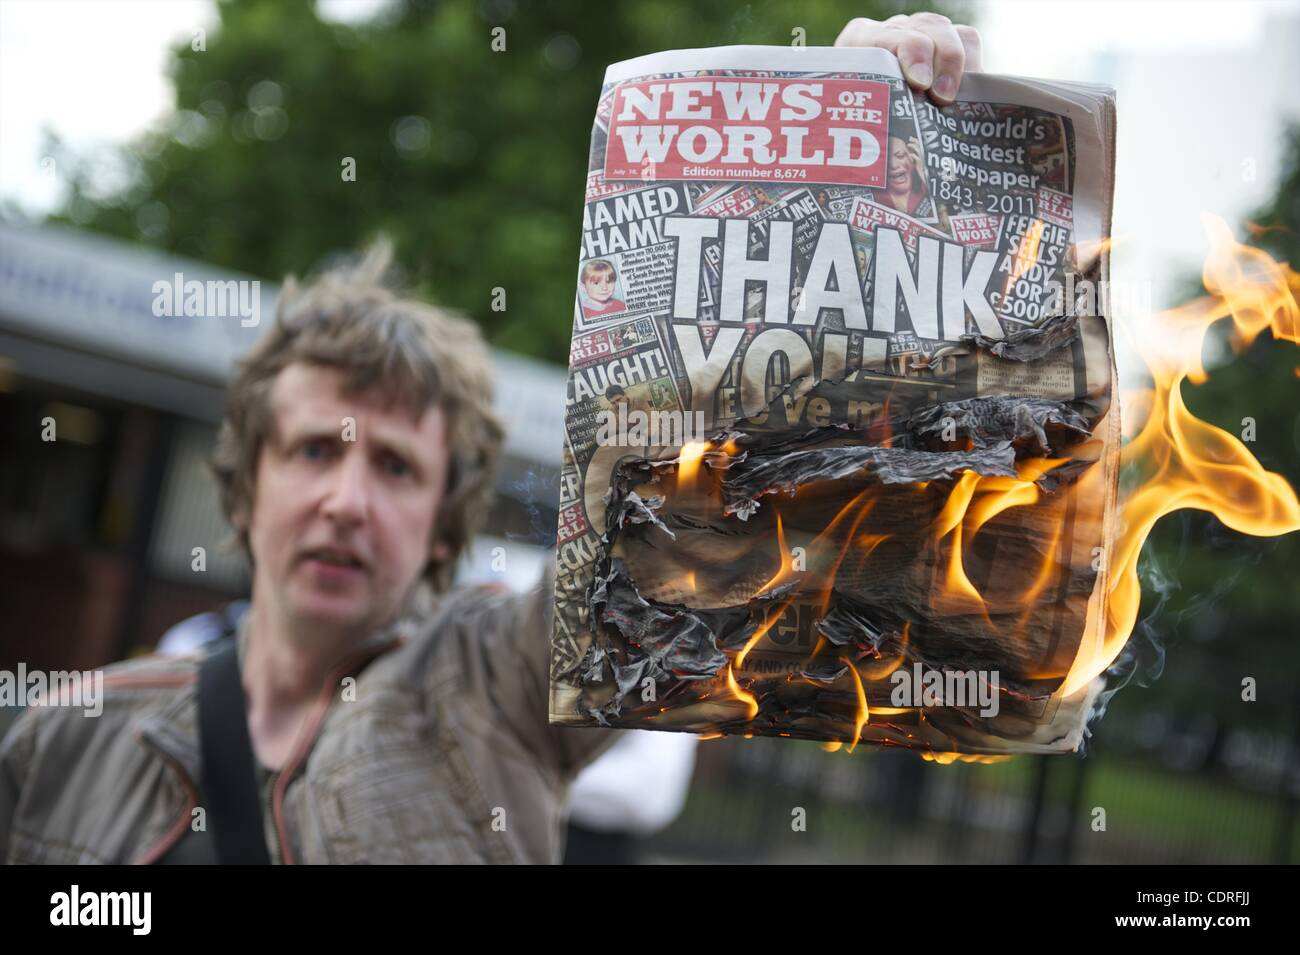 July 10, 2011 - London, England, United Kingdom - A protester burns copies of The News of the World outside News - Stock Image